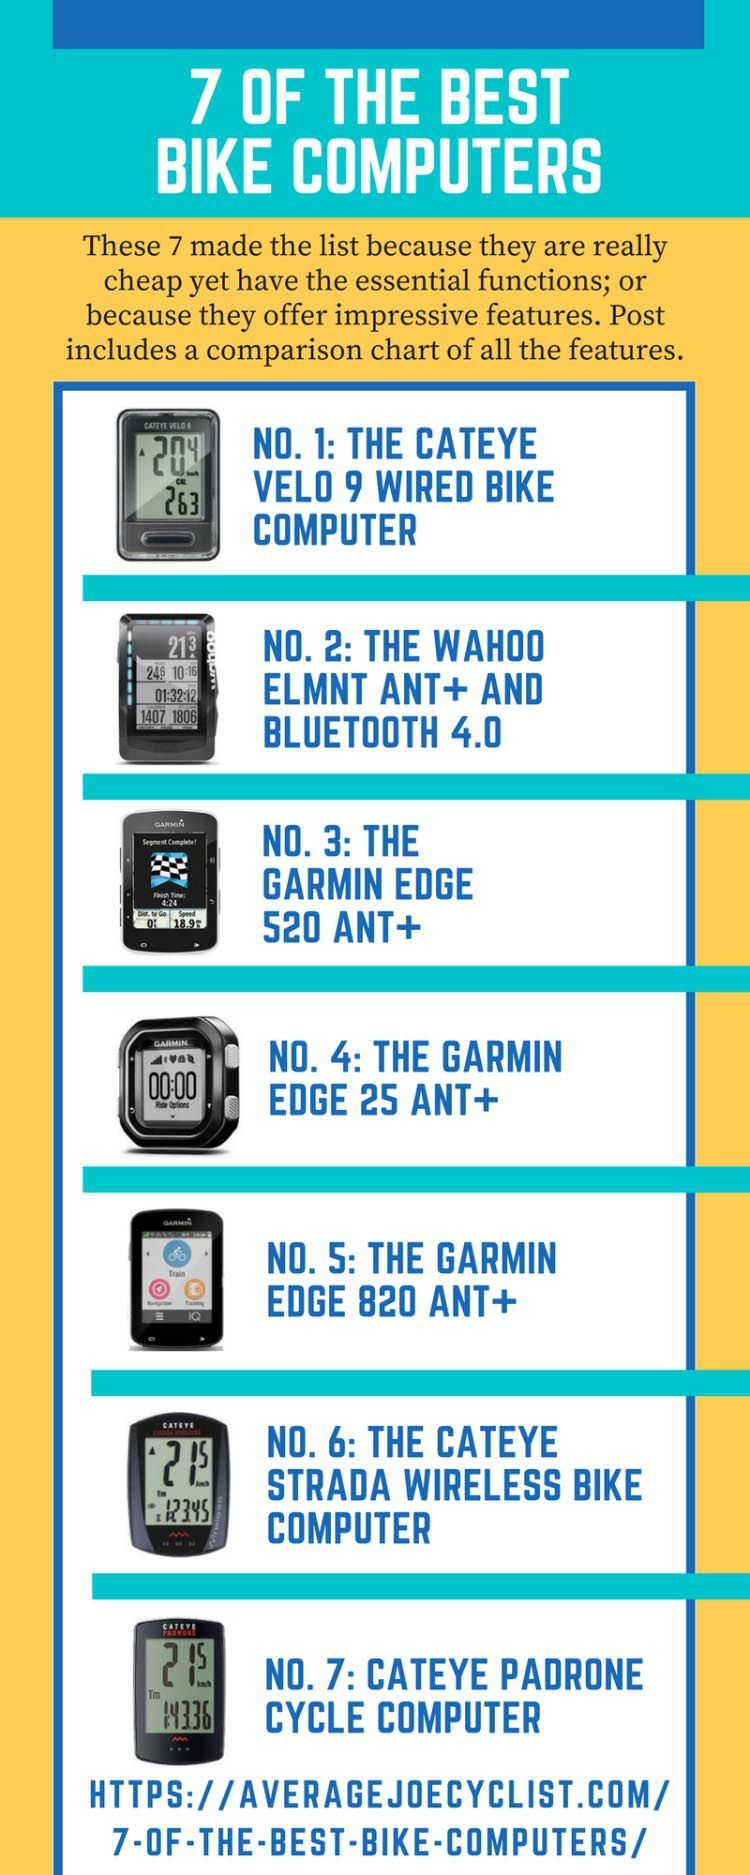 7 Of The Best Bike Computers 2020 Wireless Navigation Gps Budget With Images Cool Bikes Bike Bicycle Maintenance